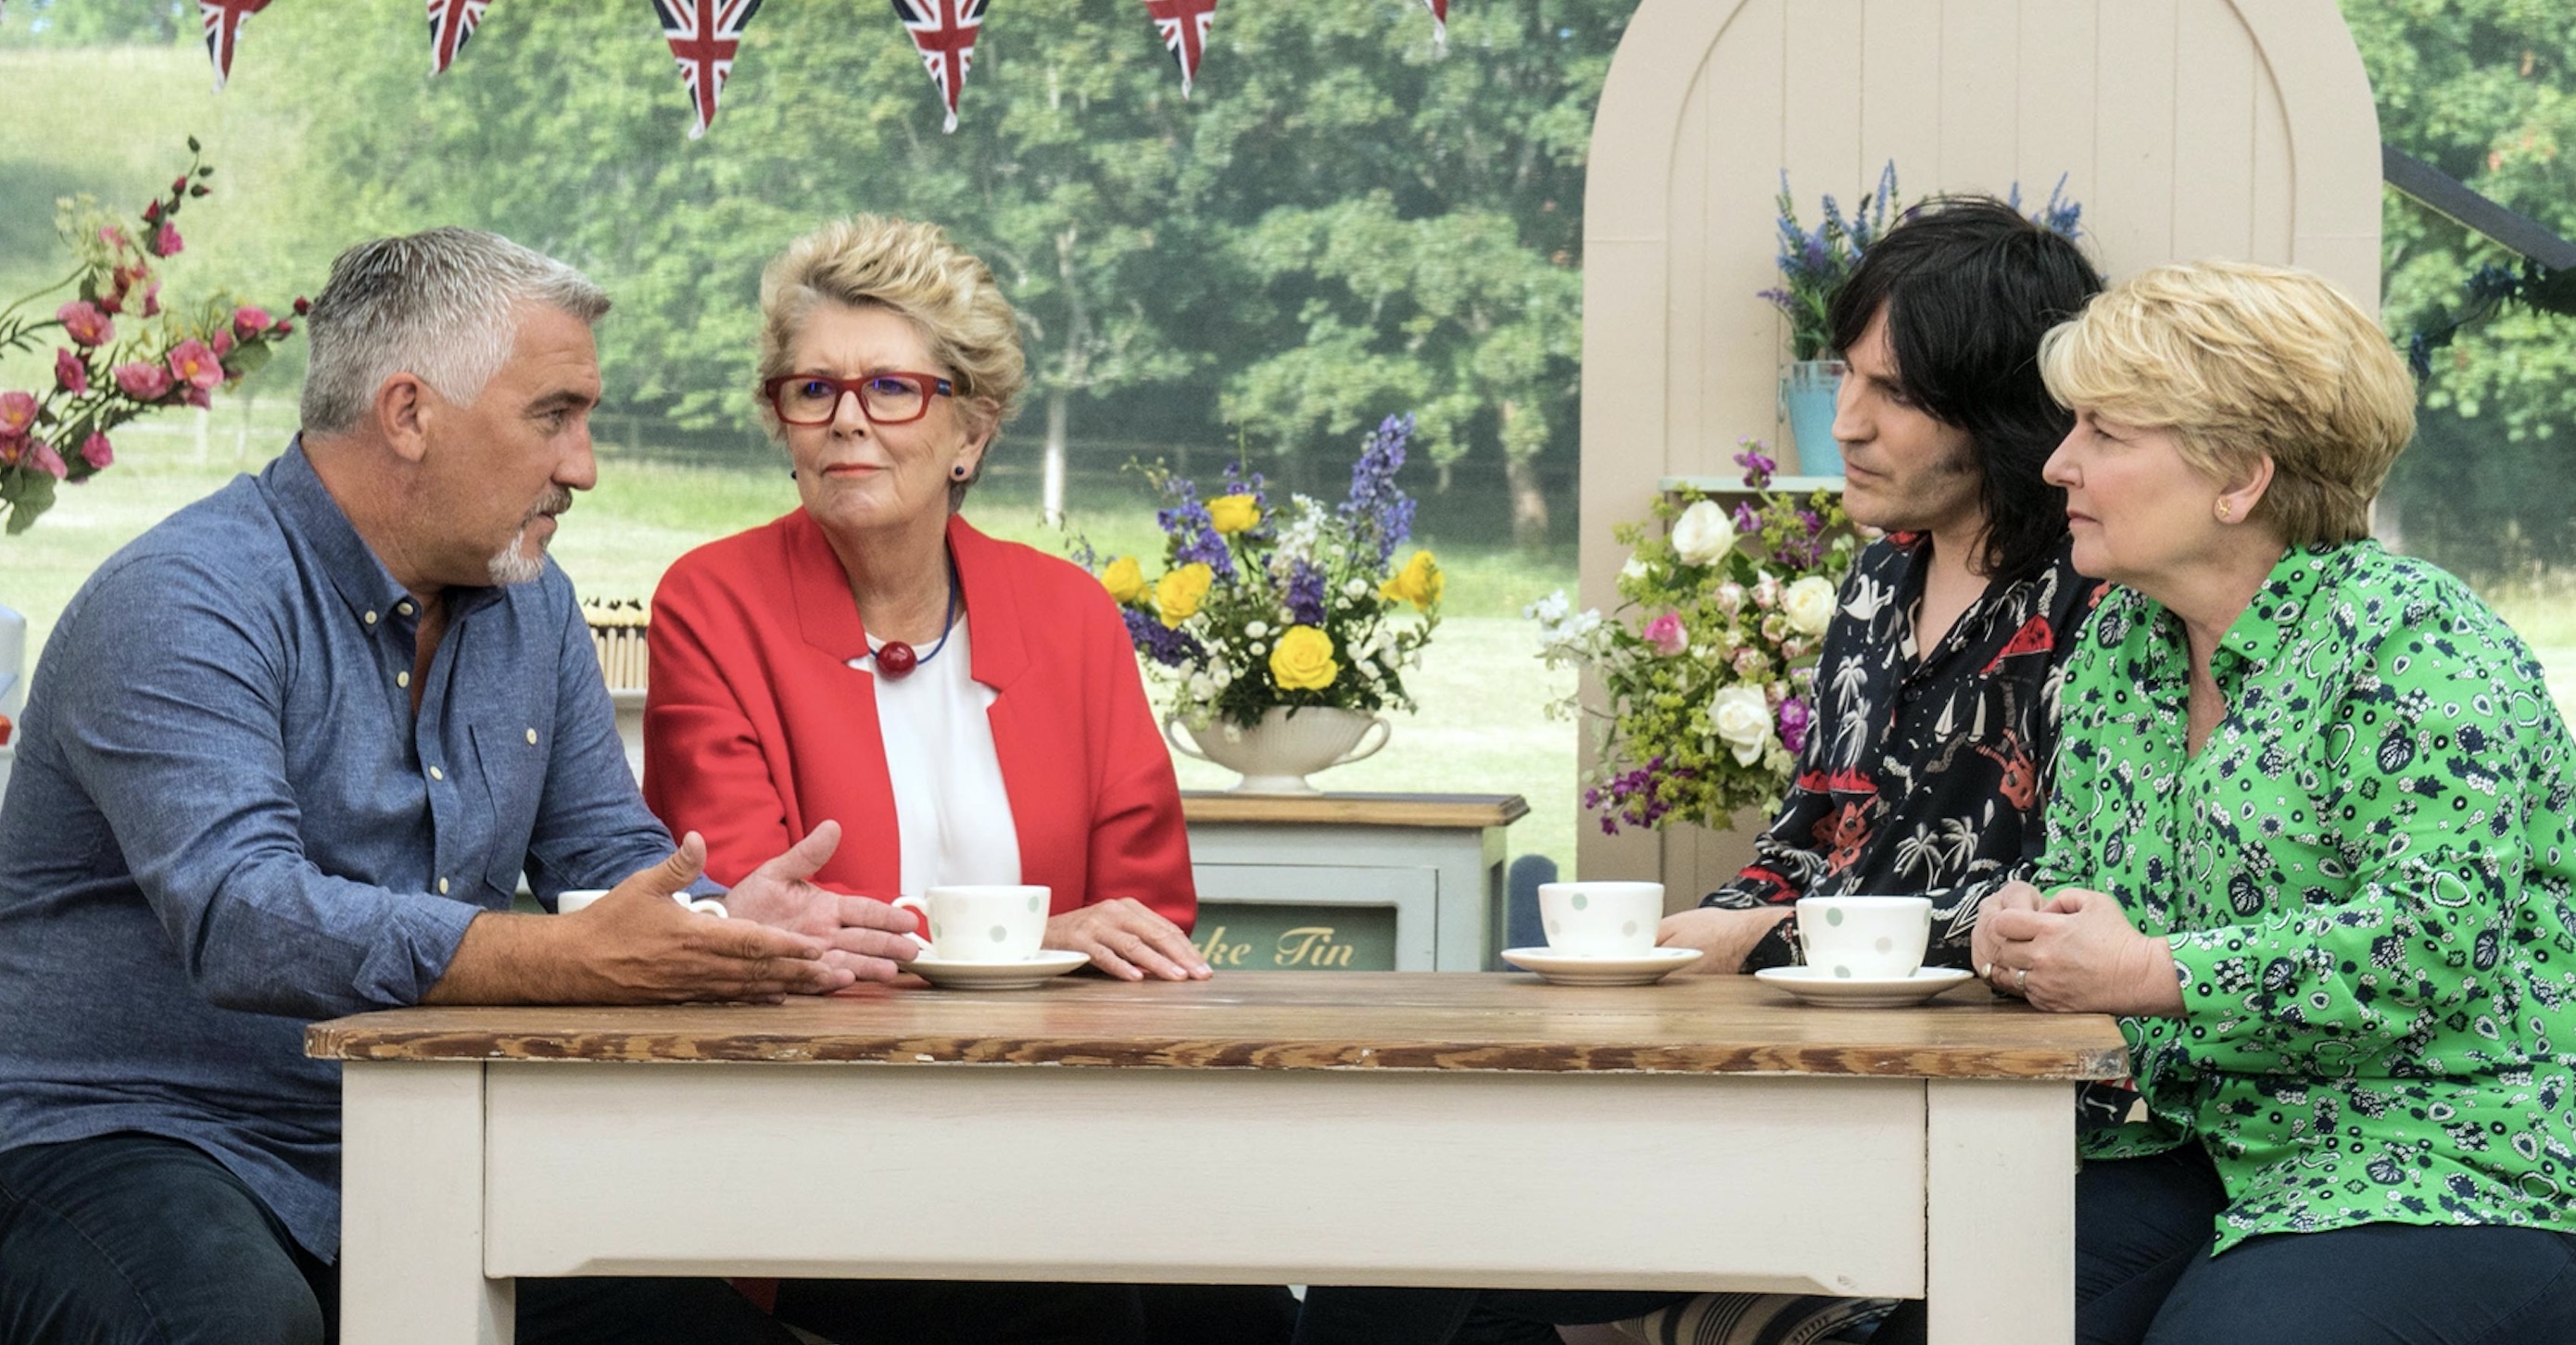 Bake Off whole panel